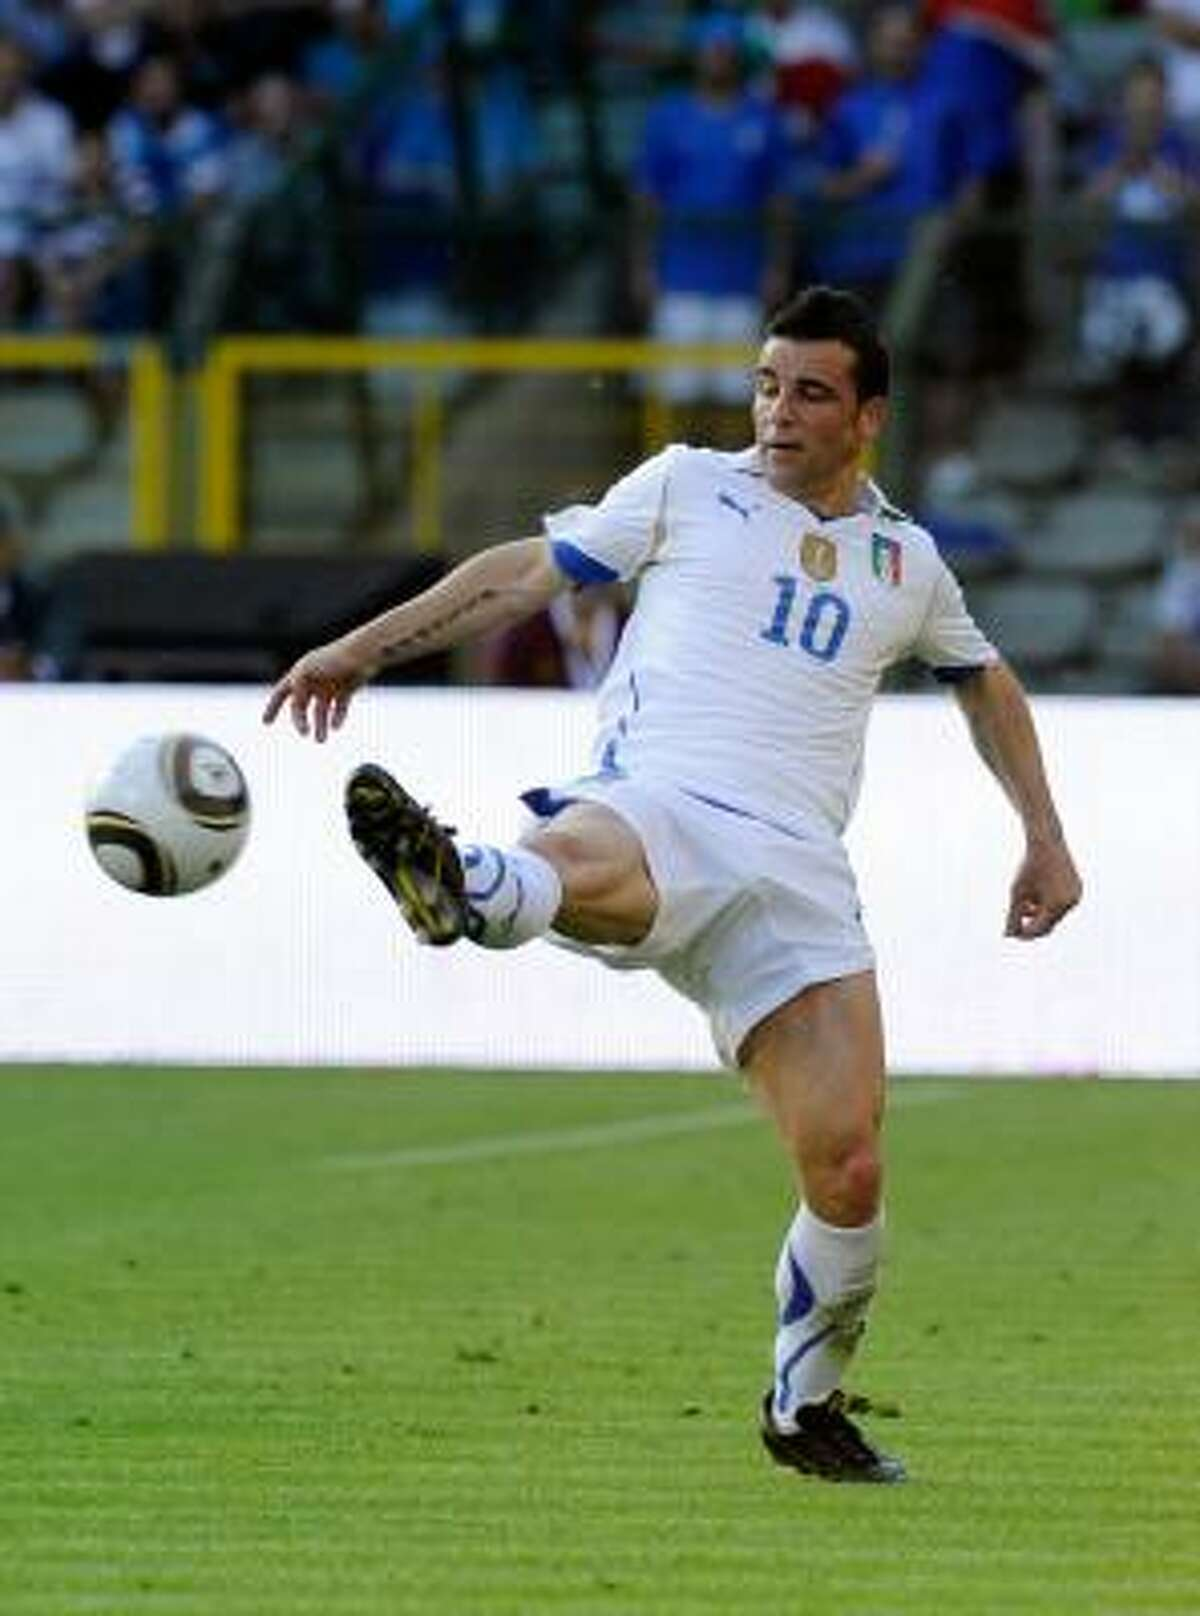 Antonio Di Natale of Italy controls the ball. The match was played at the Heysel stadium in Brussels. Before the match, players paid tribute to the 39 people, mostly Juventus fans, who died 25 years ago when a wall collapsed as they waited to watch their team play Liverpool in the European Cup final in this stadium. Another 600 fans were injured.